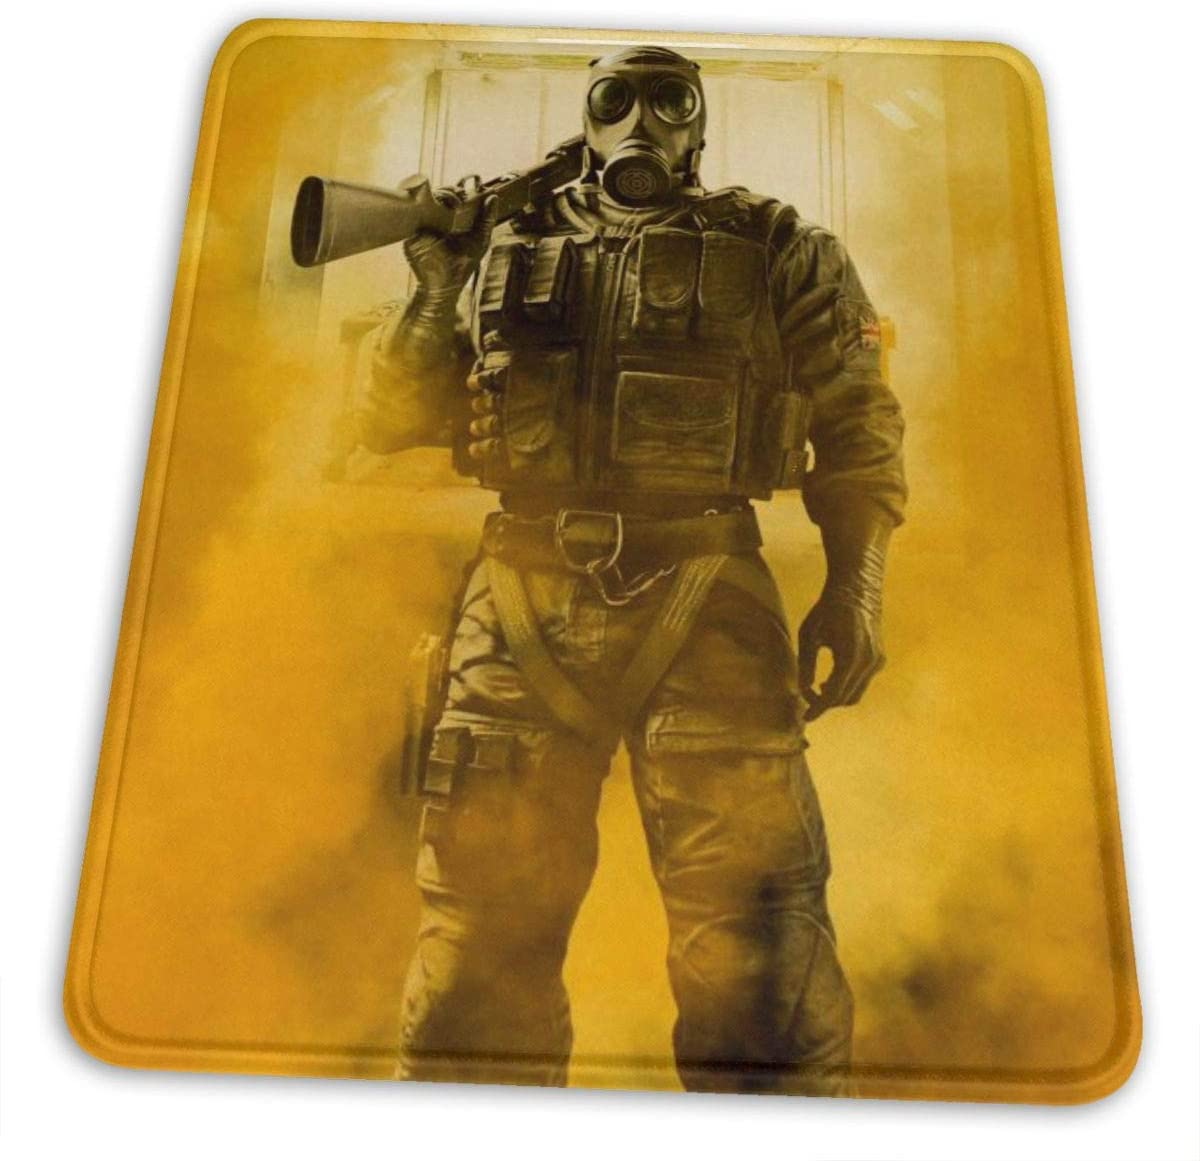 Rainbow Six Siege Gaming Mouse Pad Mouse Mat Non-Slip Rubber Game Mousepad with Stitched Edge Wrist Rests Multifunctional Big Office Desk Pad for Pc Computer Laptop 7 X 8.6 in